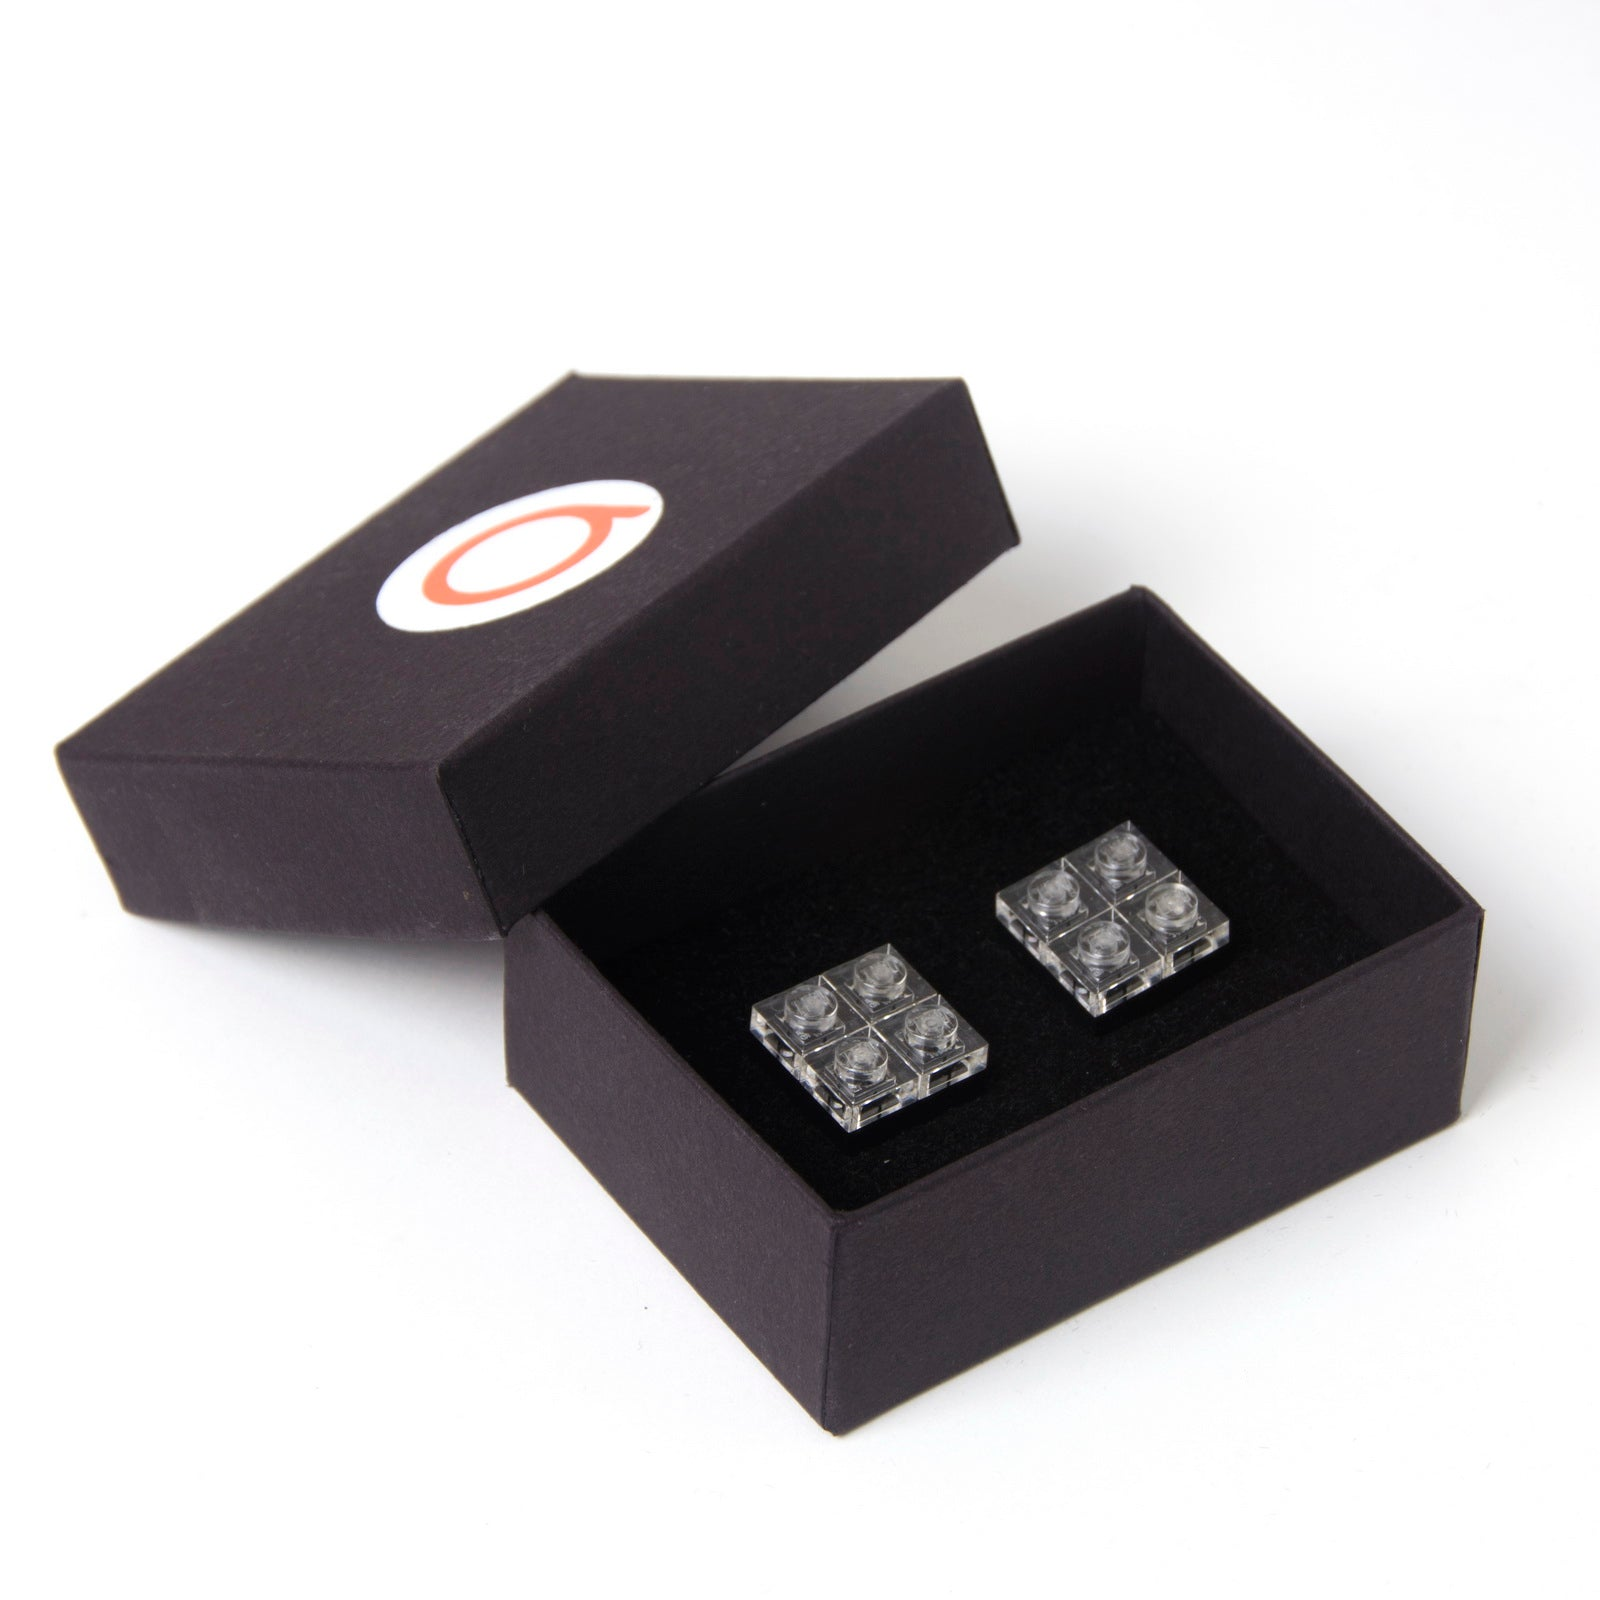 black diamonds cufflinks